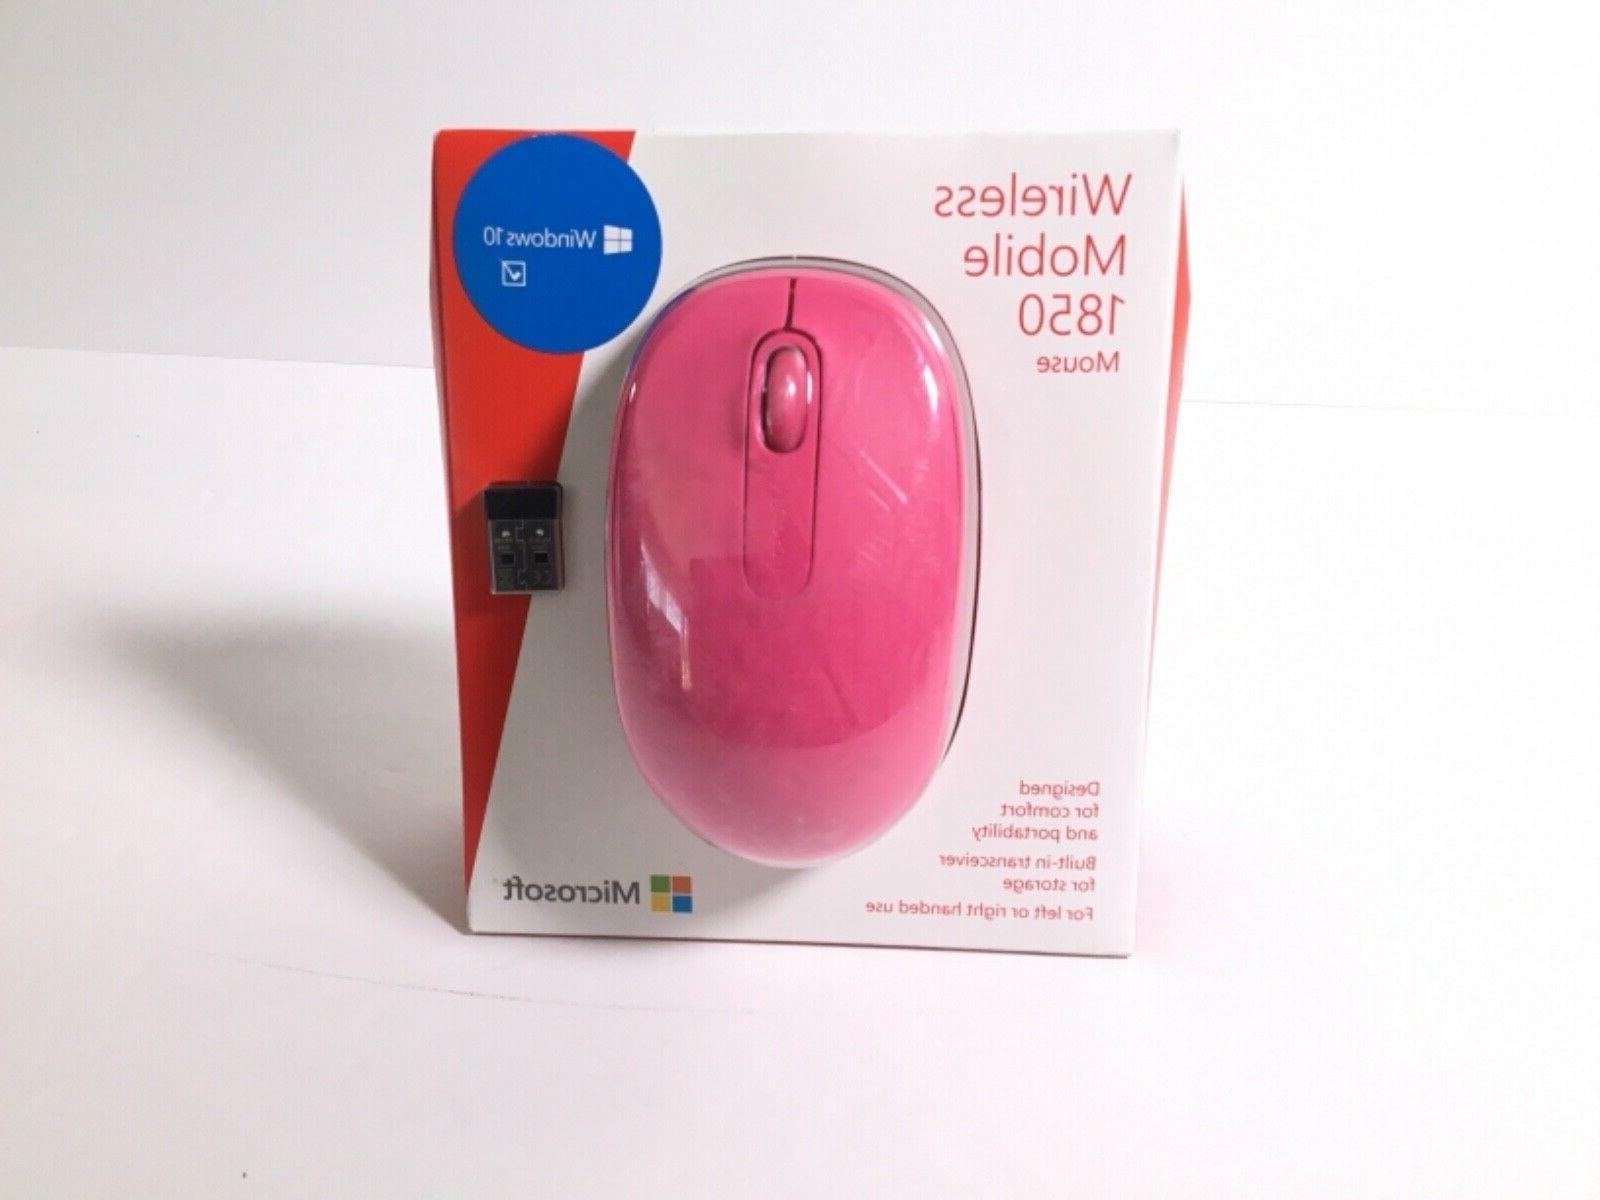 Microsoft Mobile1850 Cordless Receiver Mice